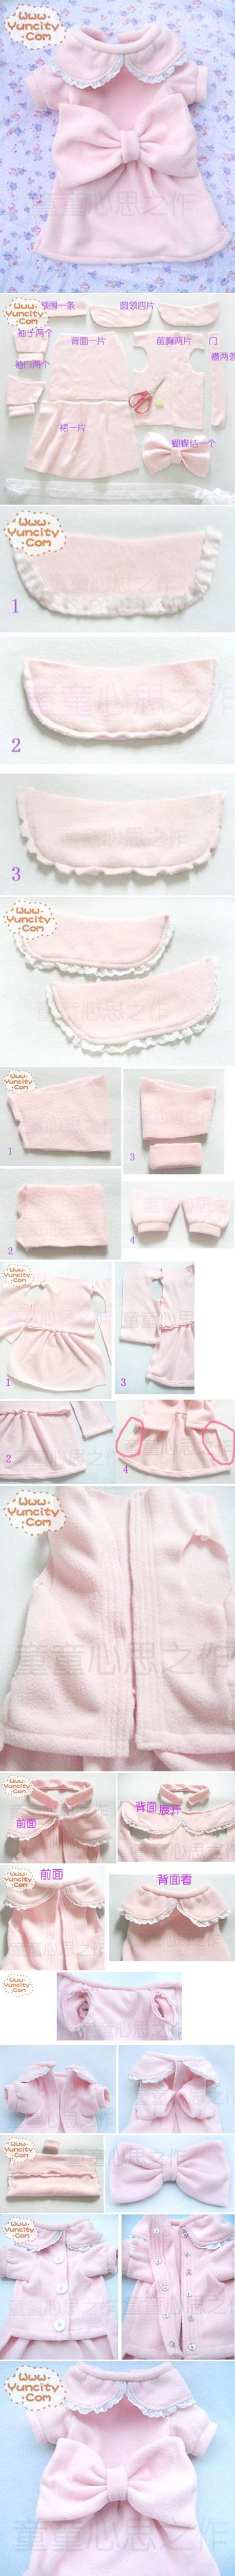 How To Make Cute Dog Dress step by step DIY tutorial instructions